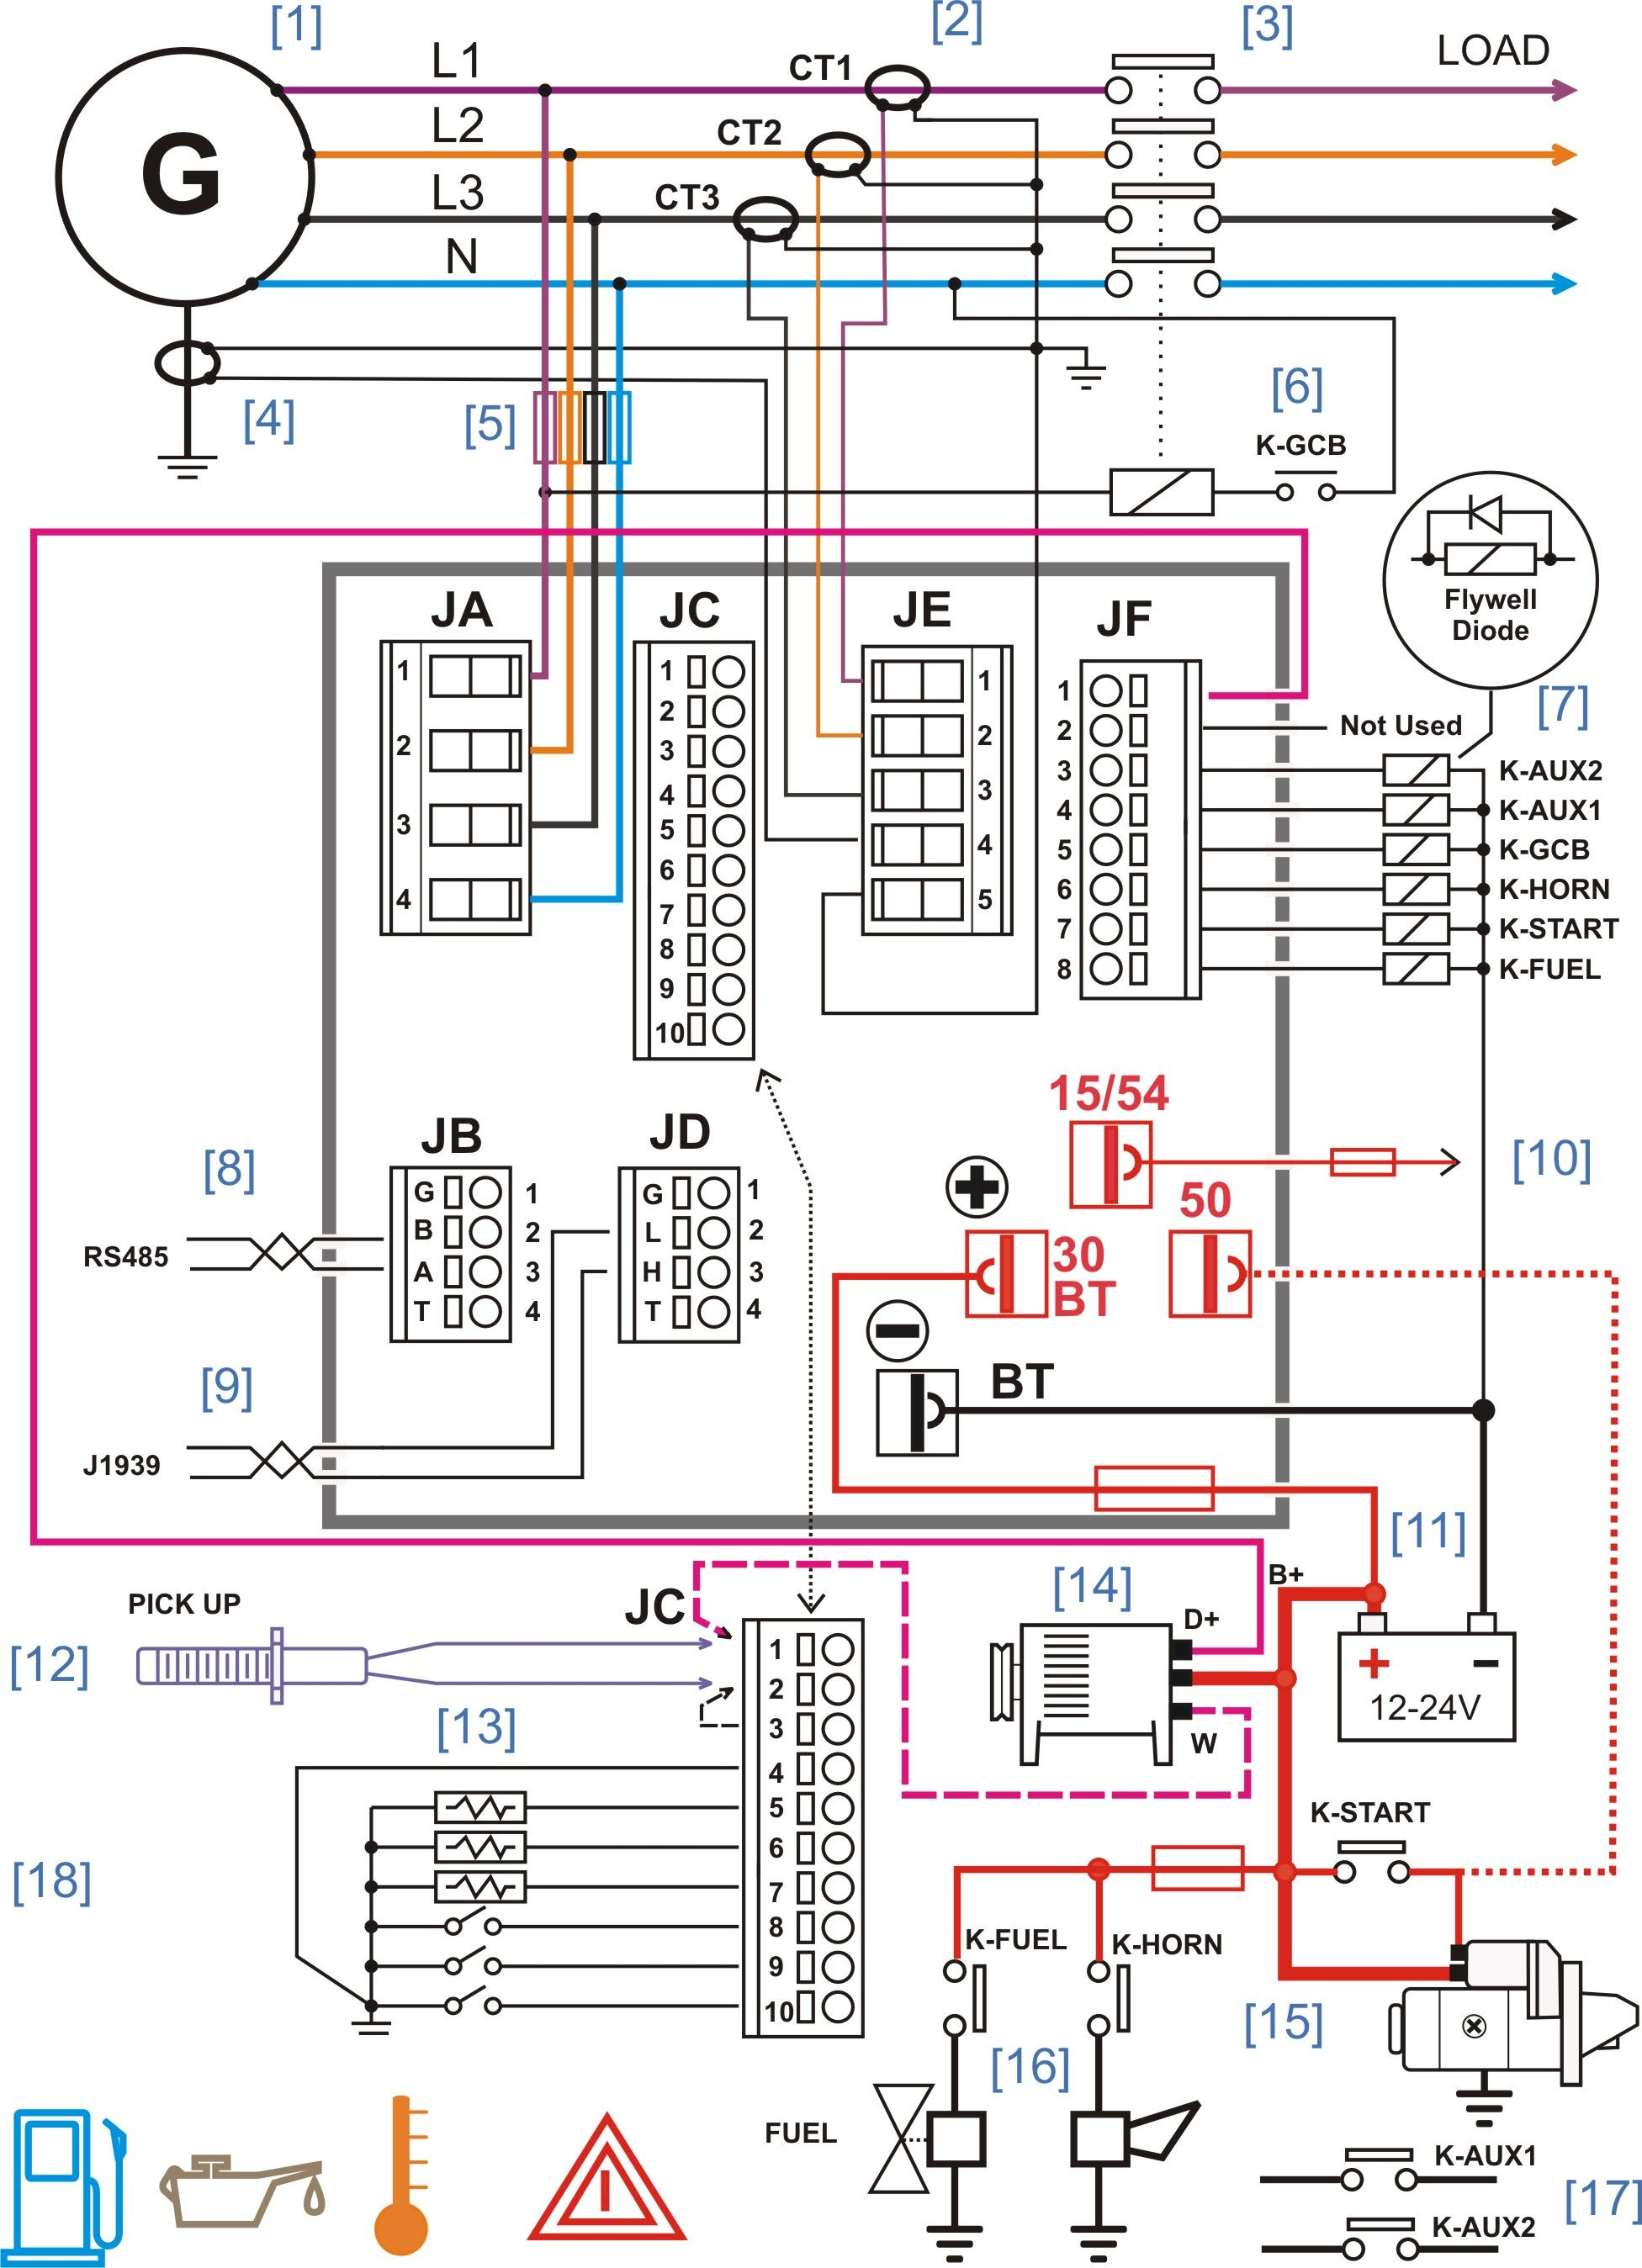 electrical wiring diagram software free diesel generator control panel wiring diagram | diesel ...